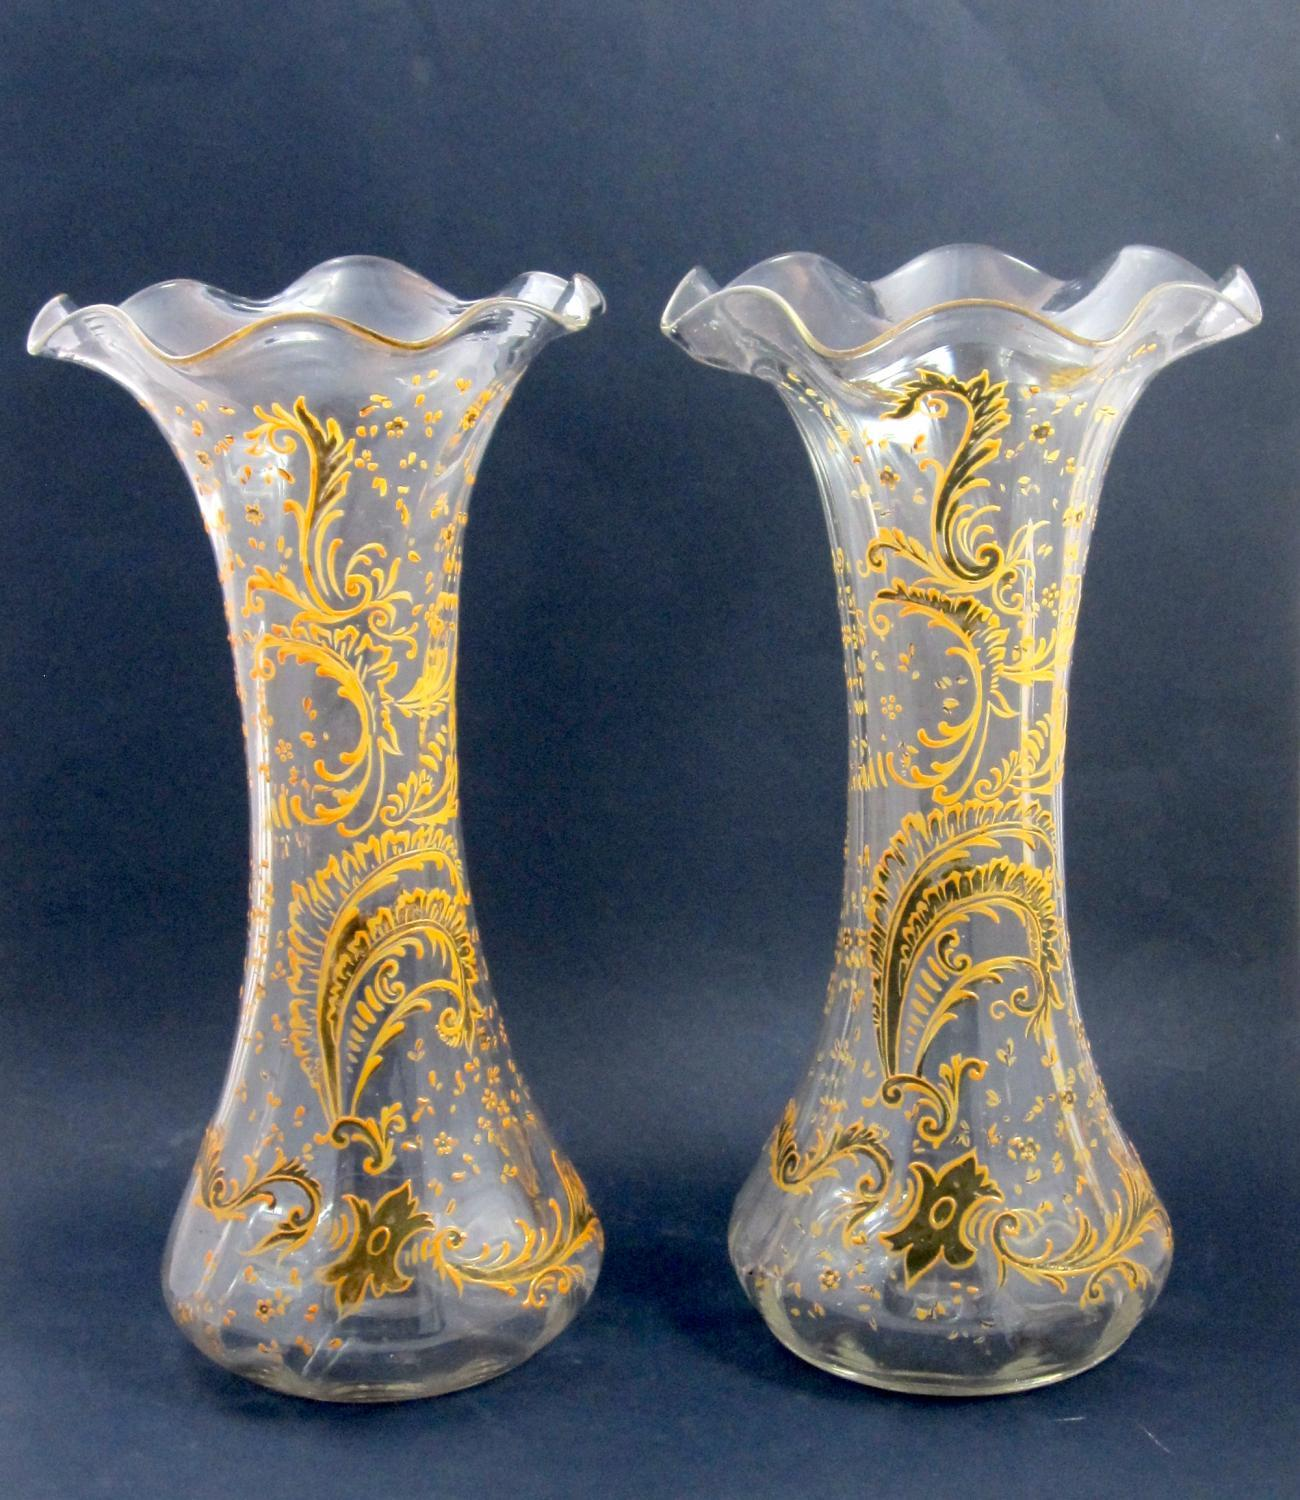 Tall Pair of Antique French Enamelled Vases